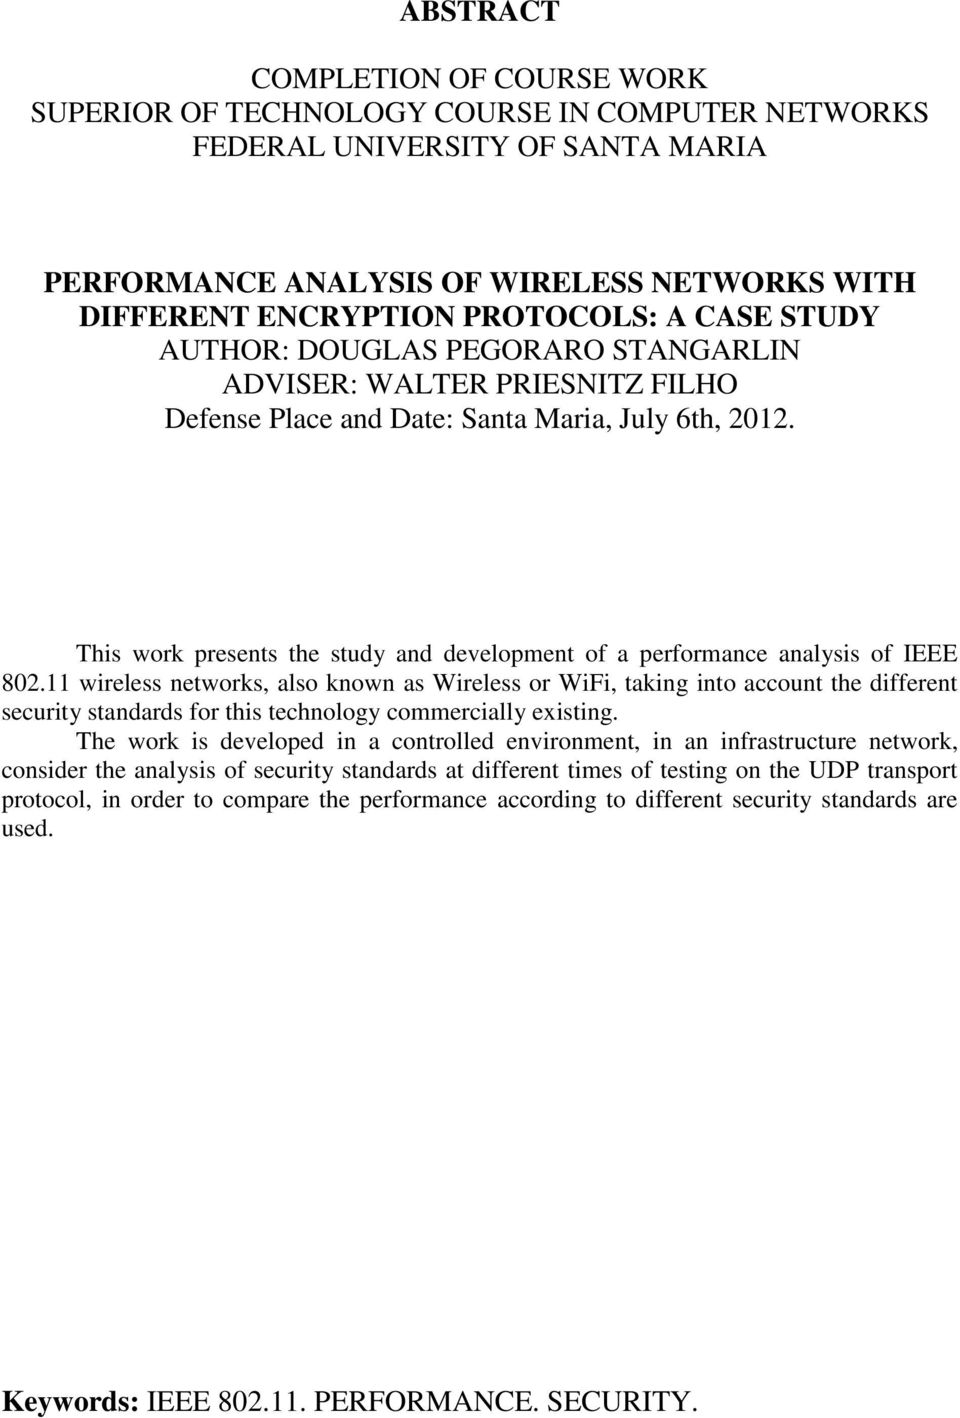 This work presents the study and development of a performance analysis of IEEE 802.